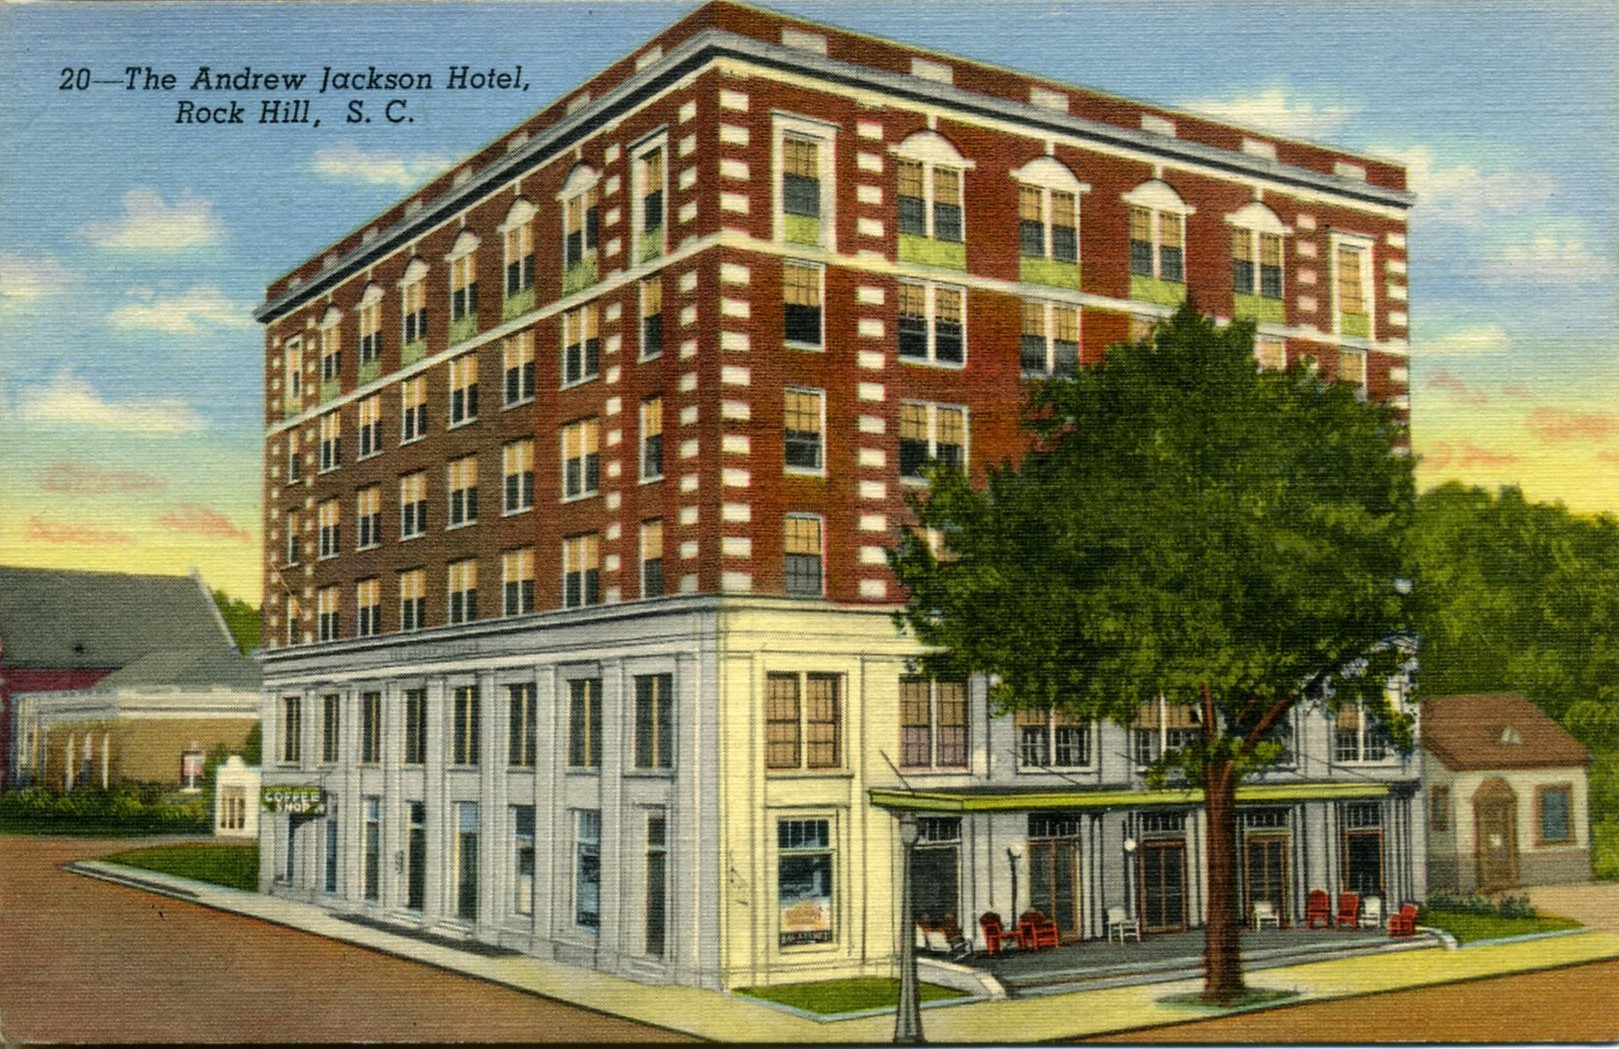 Postcard view of the old Andrew Jackson Hotel. Take note of the small building to the right of the hotel, reportedly the Roddey's kitchen, left when their home was razed to build the new hotel.